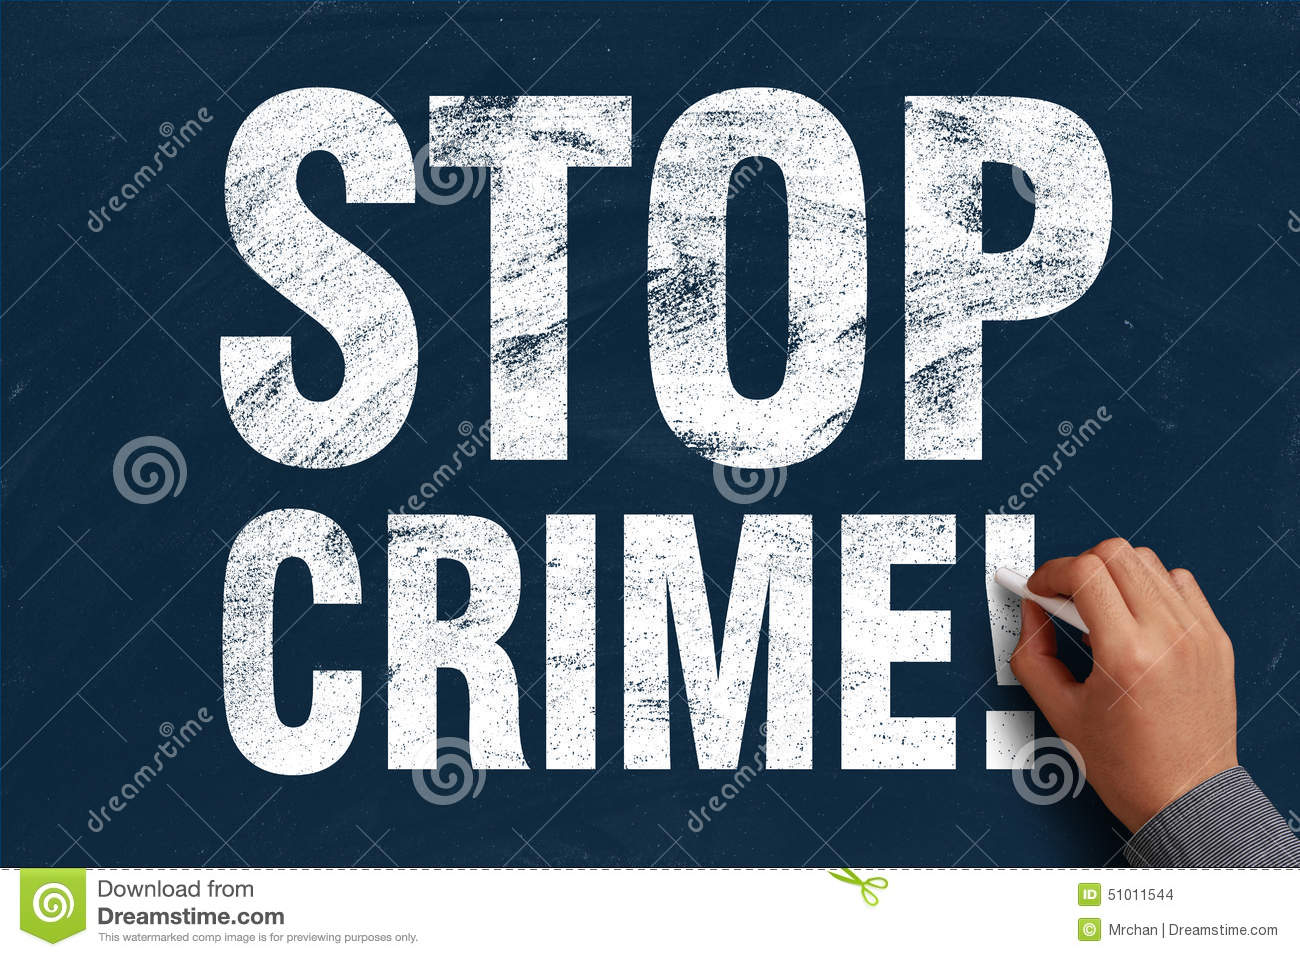 how to stop crime 1일 전 a spokesperson for mr khan responded: this is desperate nonsense from the man who was in the government that slashed stop and search and funding for our police and preventive services and saw violent crime rise across the country.